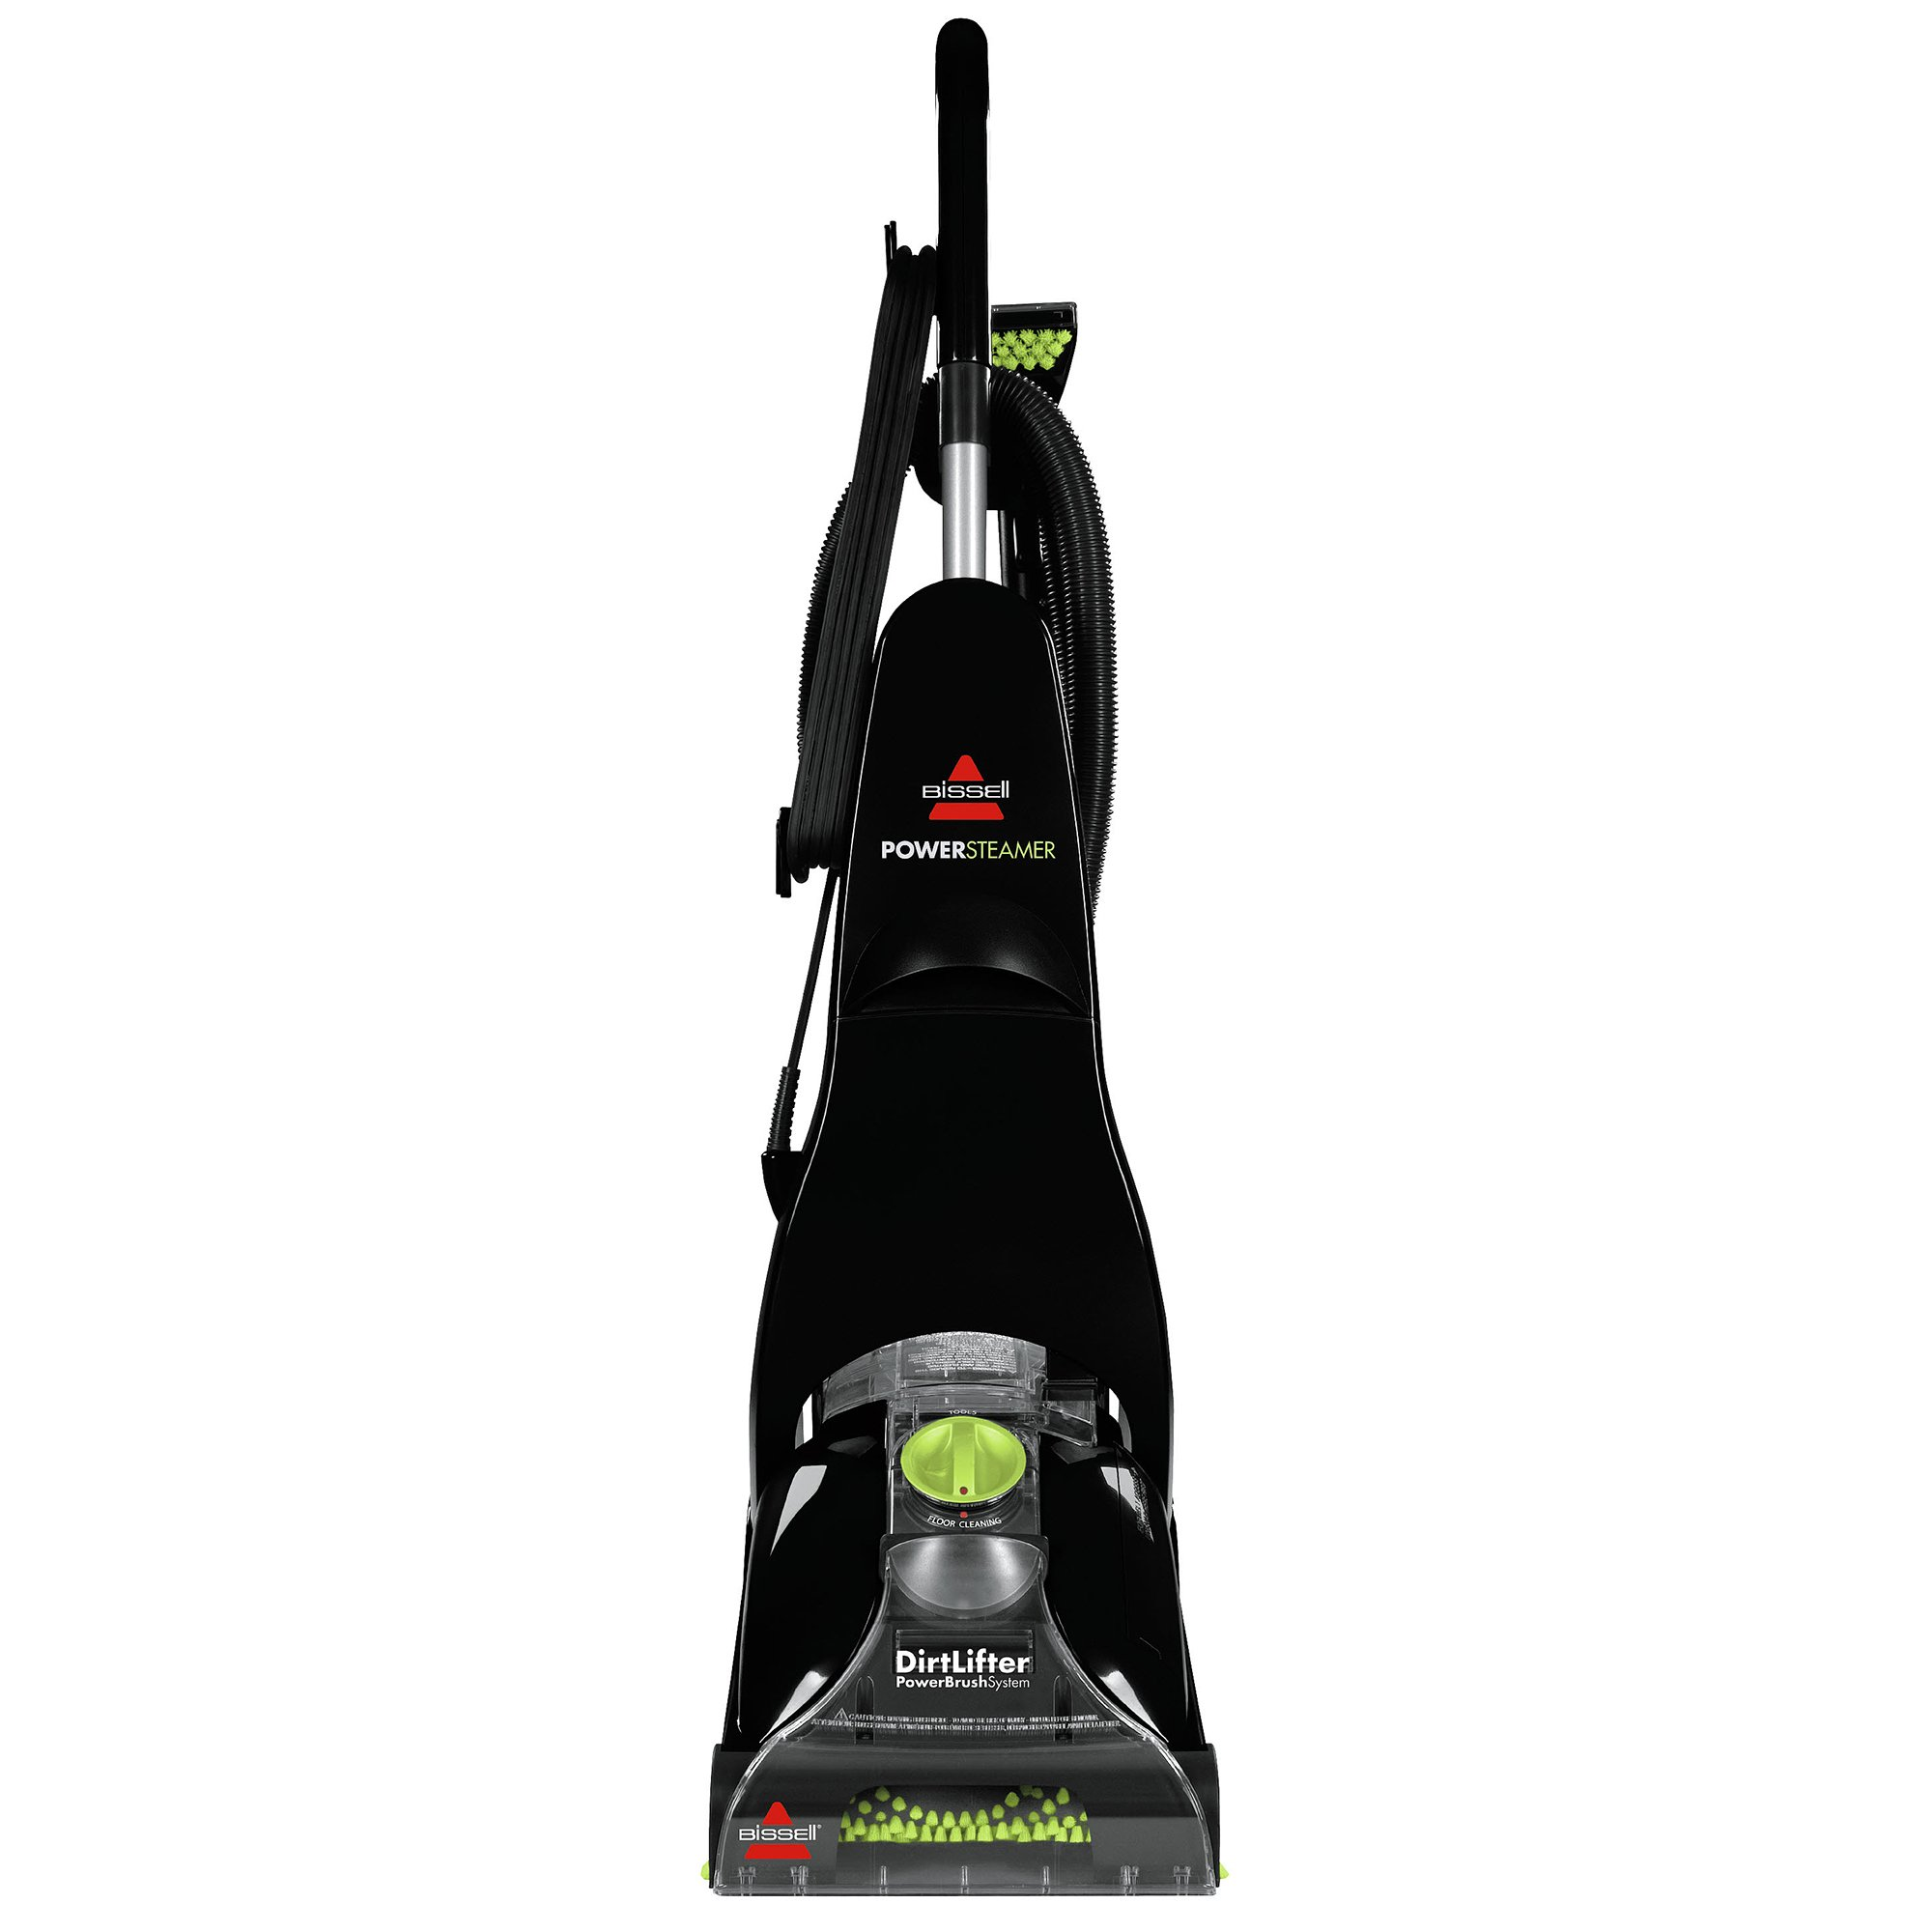 BISSELL Powerbrush Carpet Steamer and Carpet Cleaner, 16237